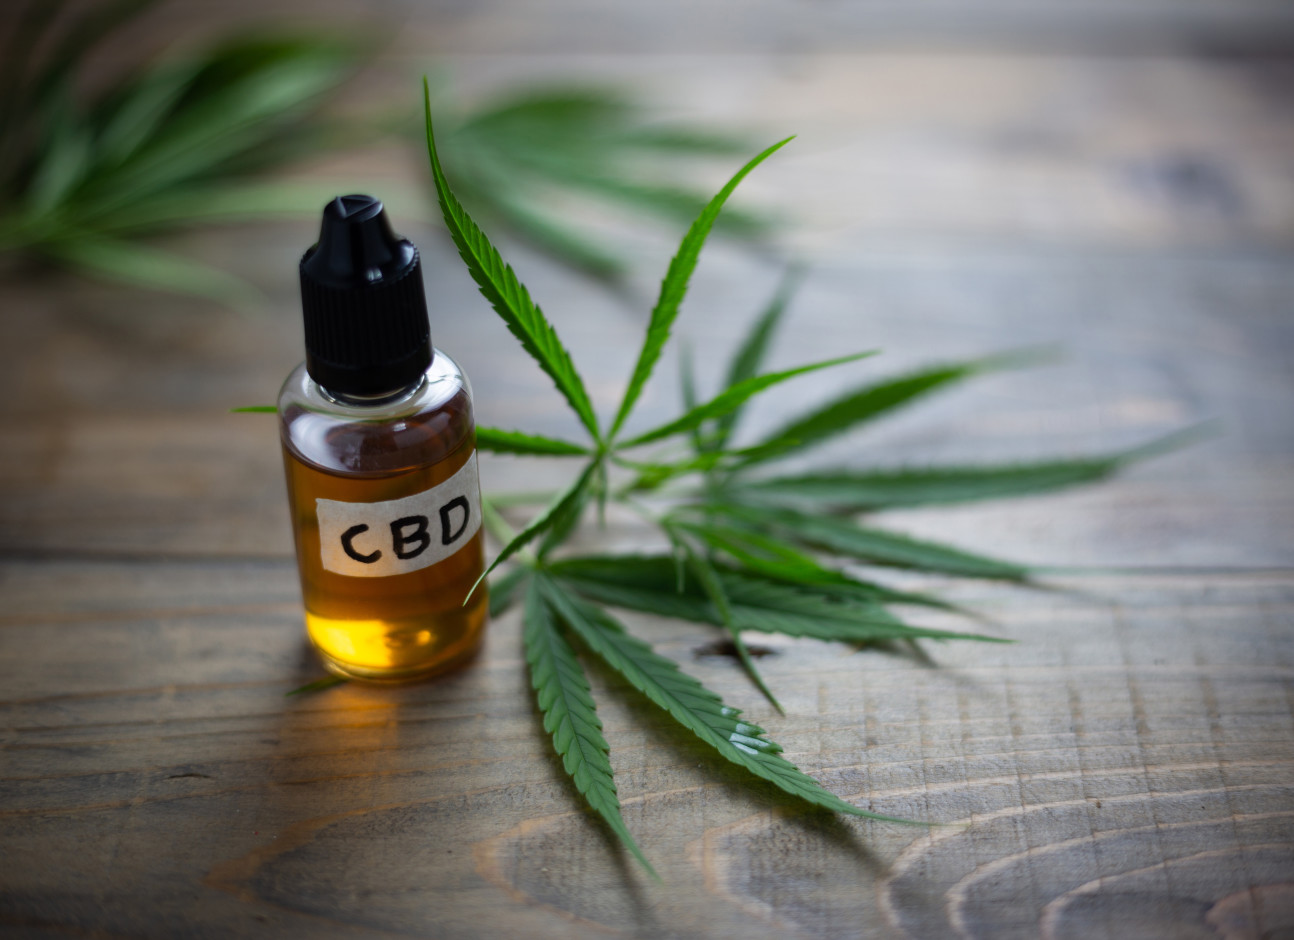 Small jar of oil marked 'CBD' next to cannabis leaf